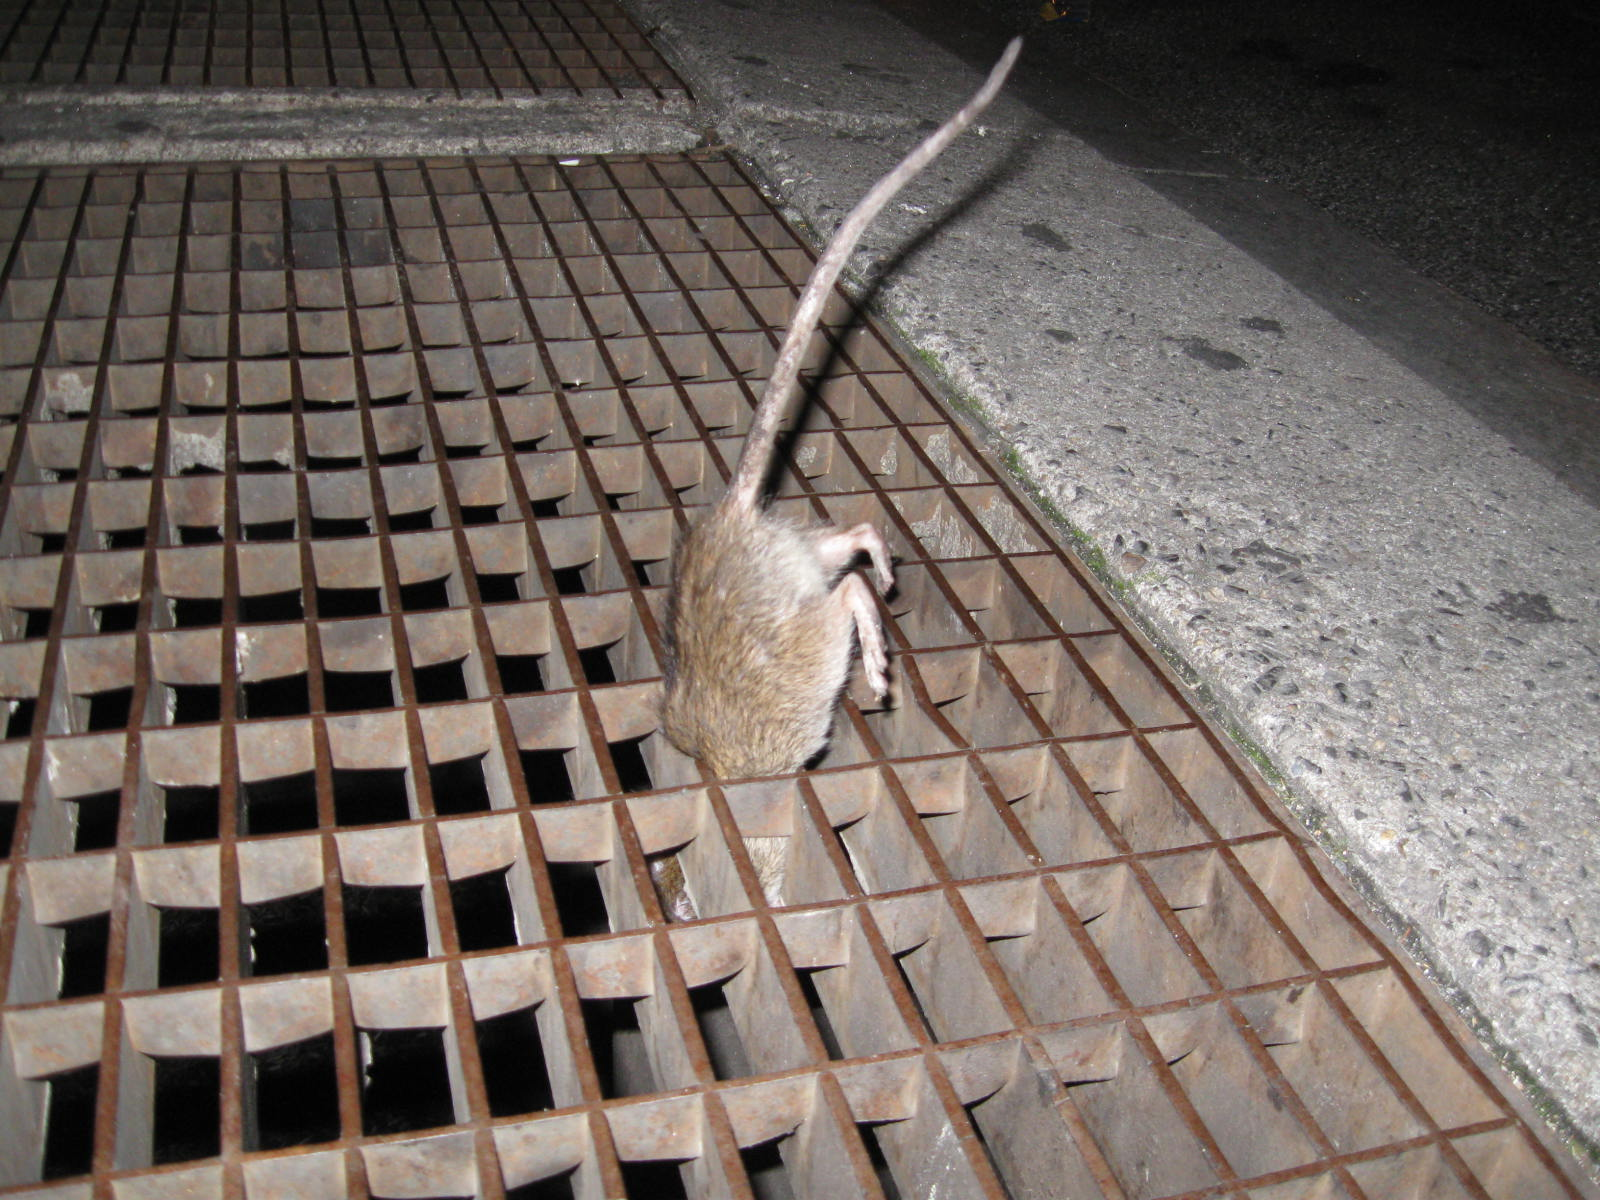 Rats In New York Carry Fleas Capable Of Transmitting The